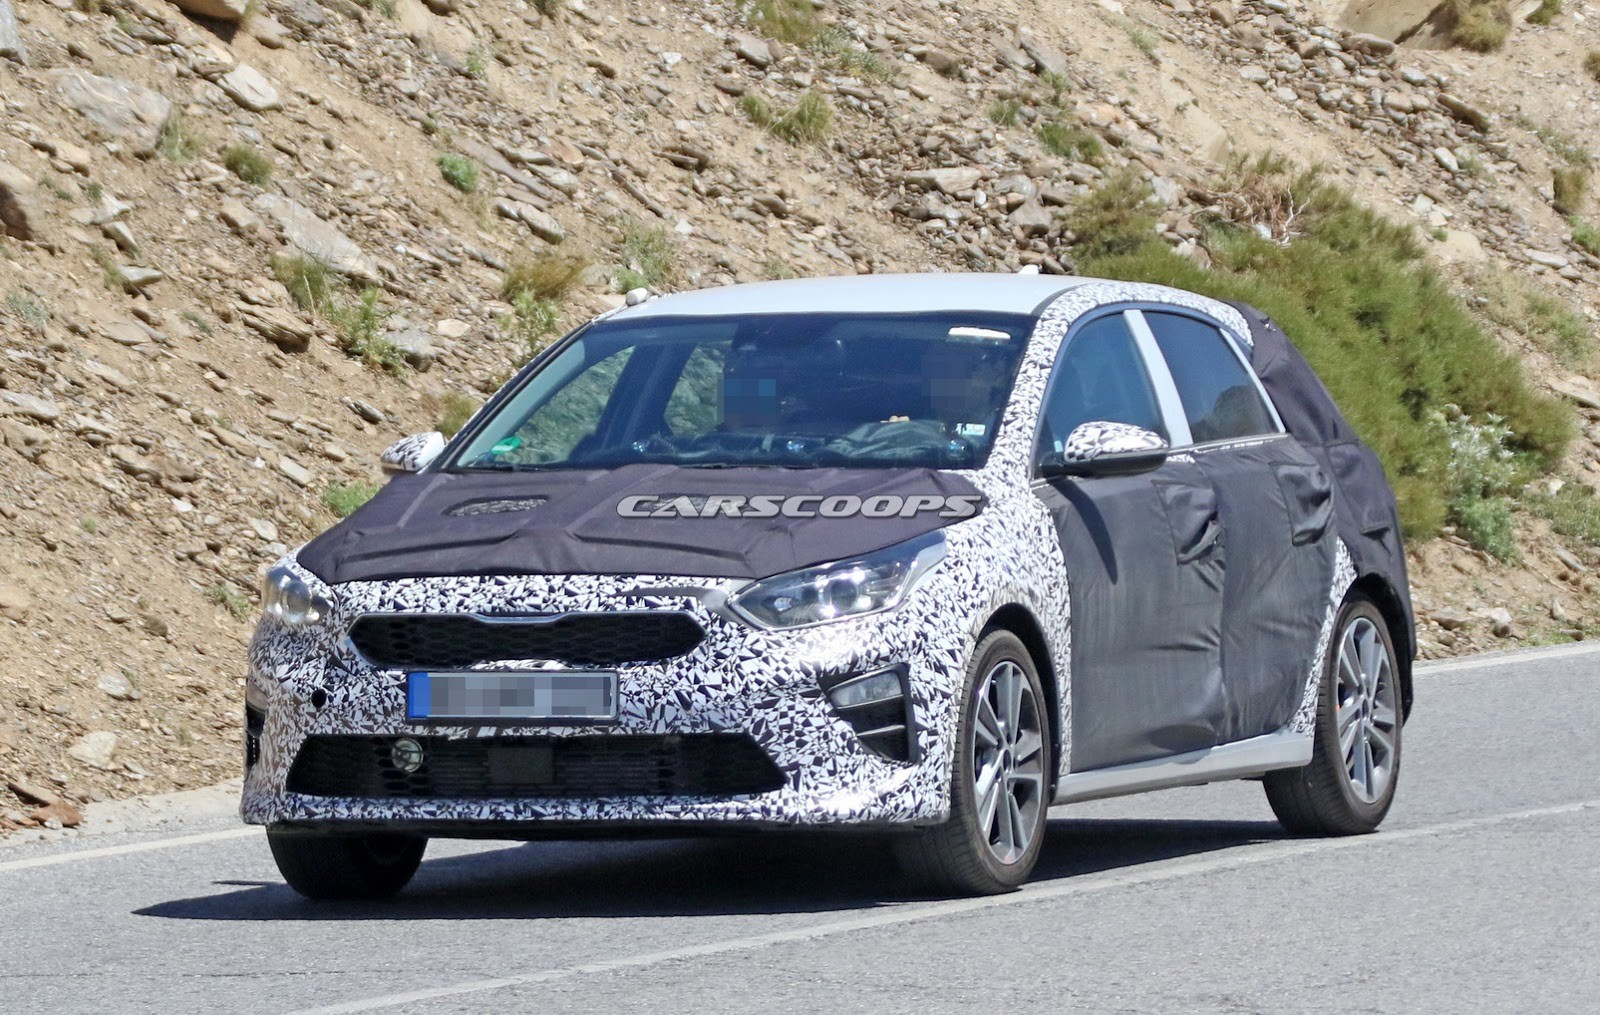 kia-ceed-spy-shots-2